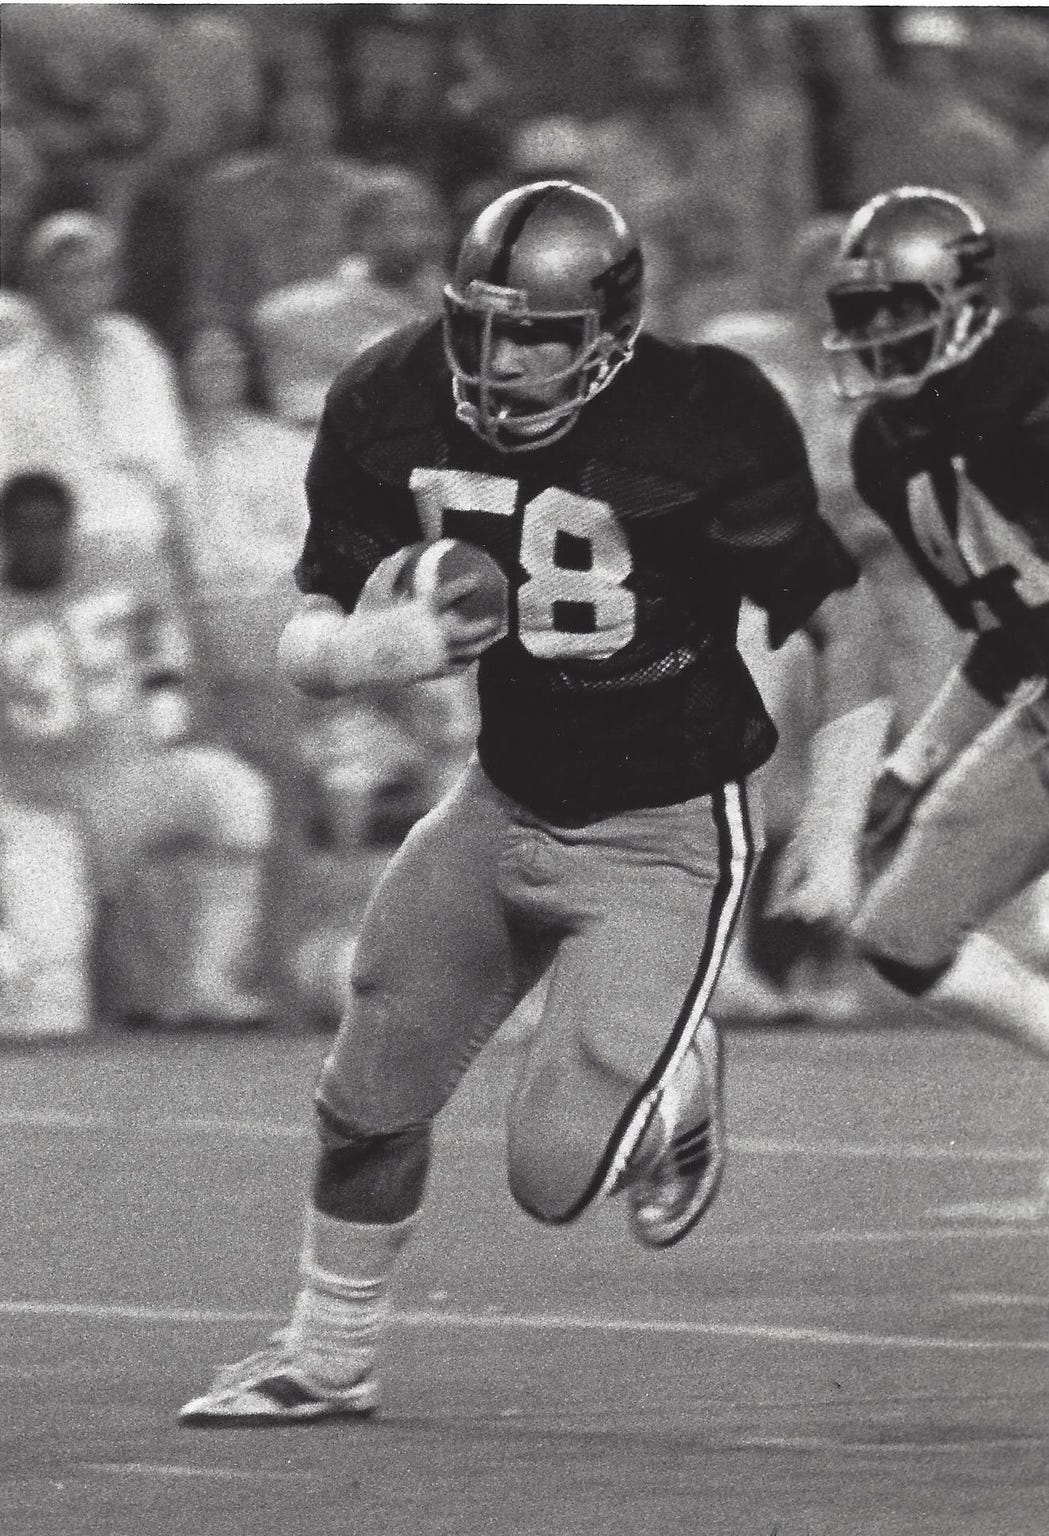 Purdue linebacker Kevin Motts during his final game as a Boilermaker, in the 1978 Bluebonnet Bowl.